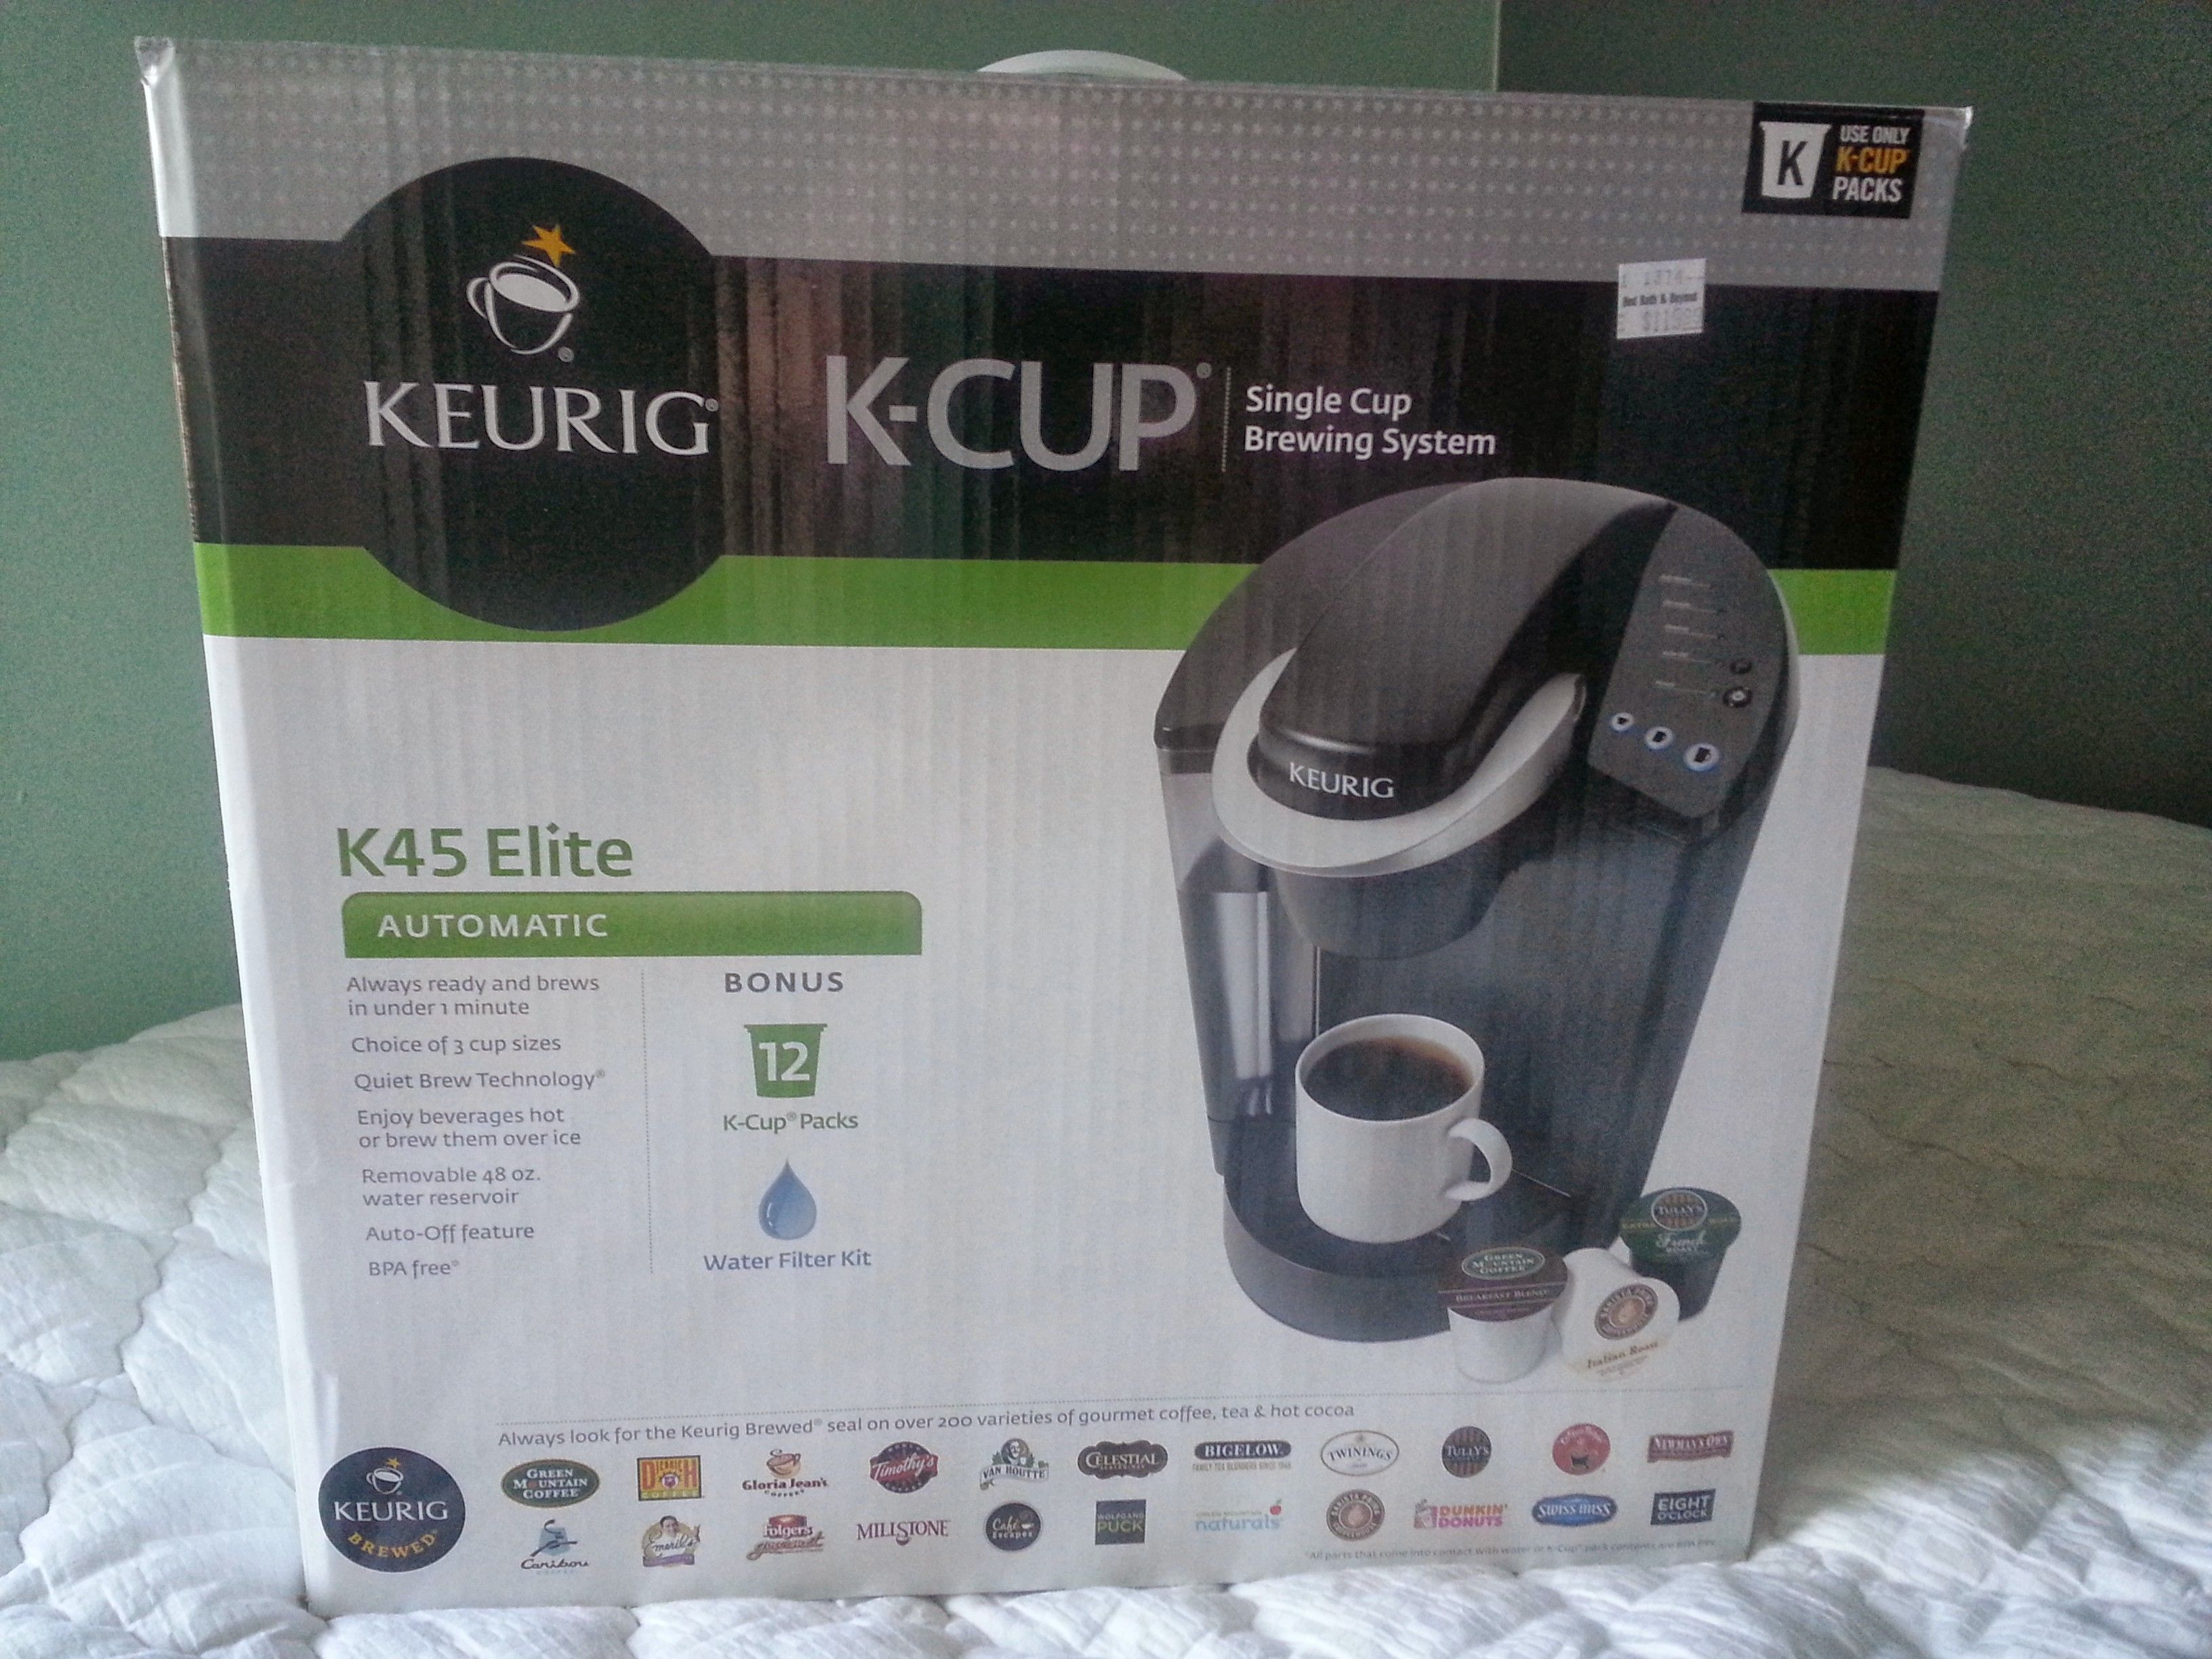 Keurig K-Cup Single Cup Brewing System in aaALLHouseSale_worldwideitems' Garage Sale in Kenosha , WI for $95. K45 Elite. Includes 12 K-Cup Packs and a water filter kit. I bought this as a wedding gift, but then they announced that they were moving away and preferred gift cards. i cant find the receipt :( its never been opened.